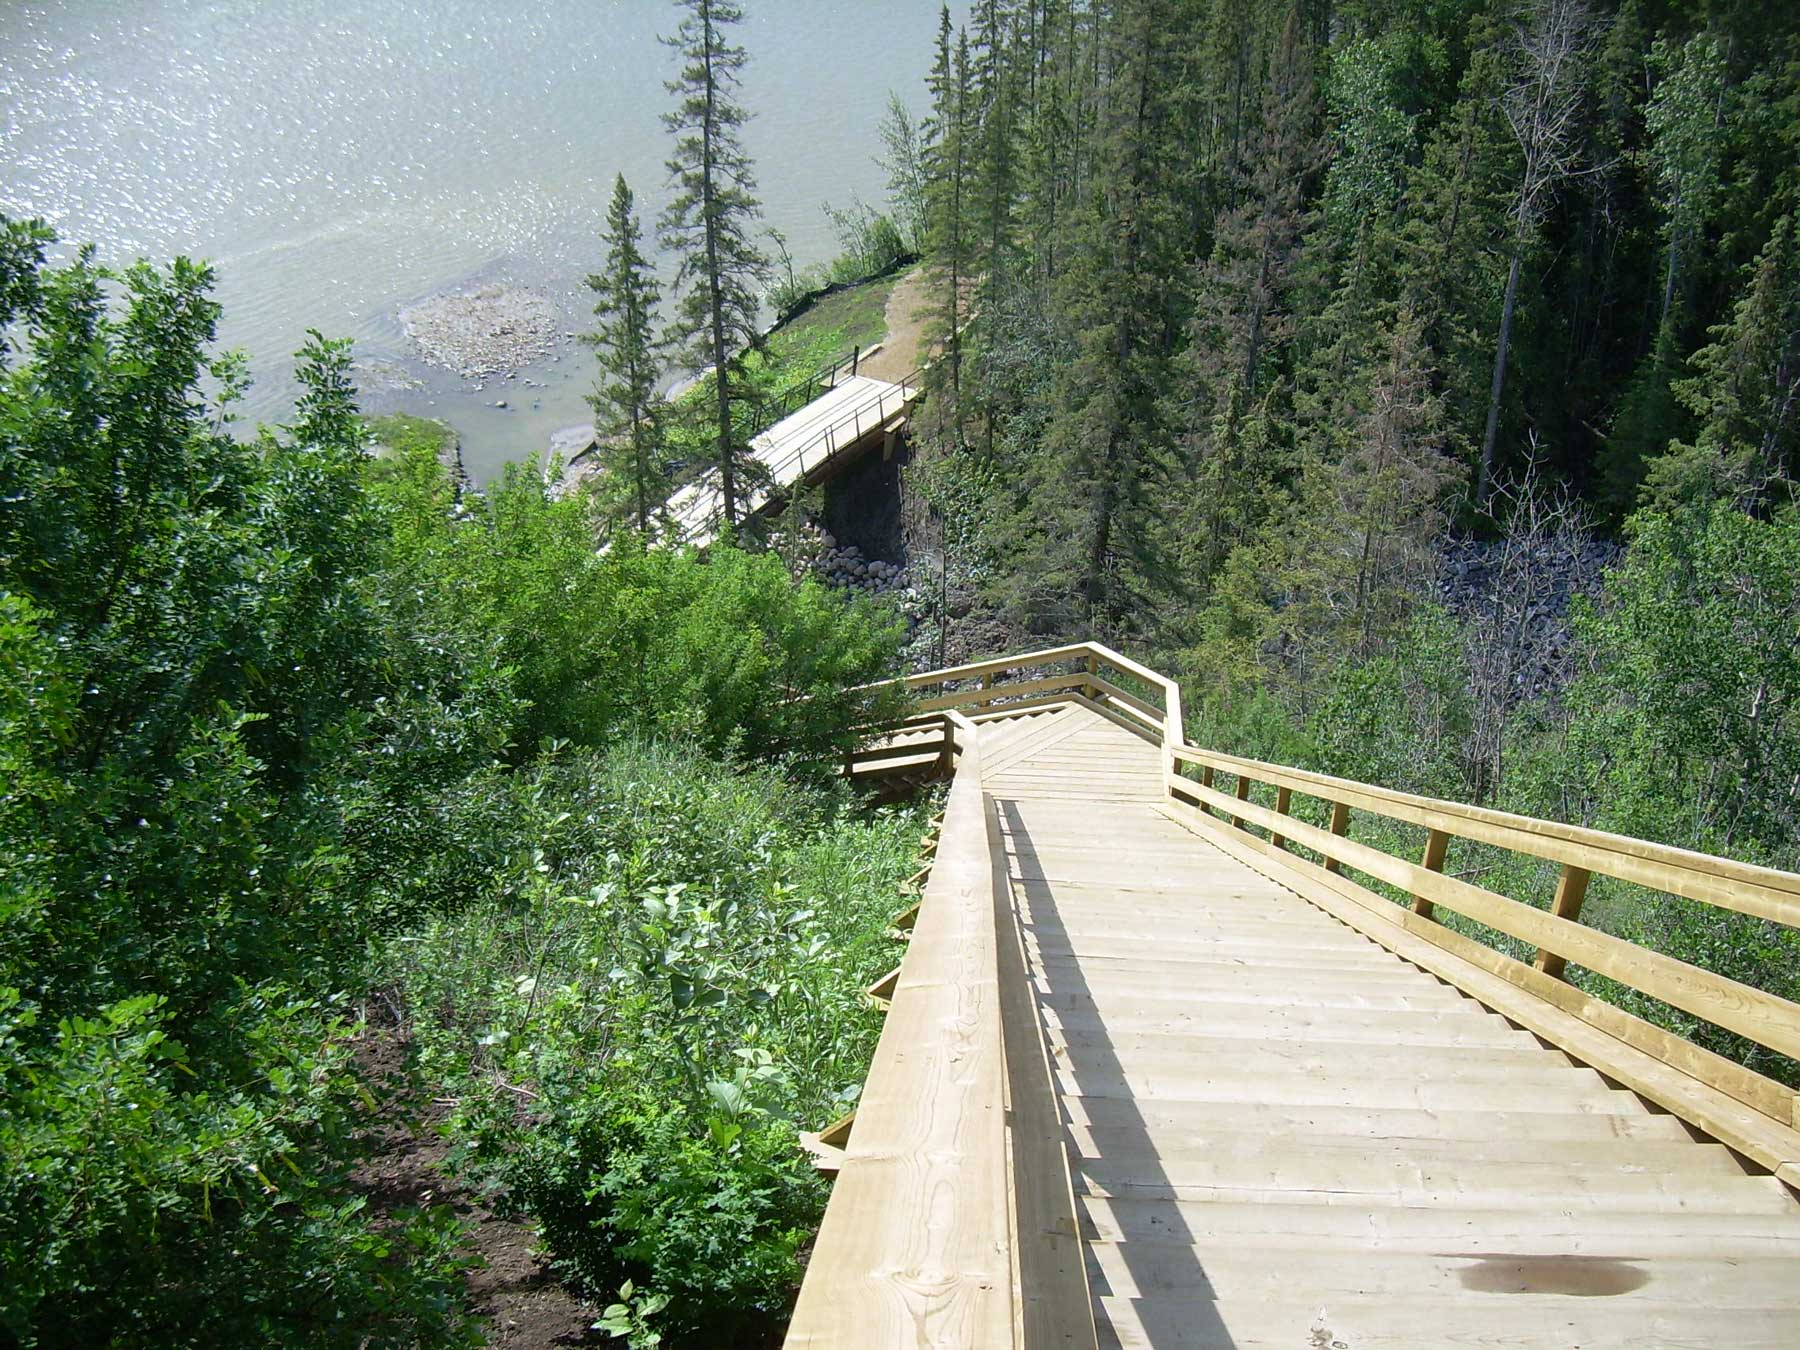 Fort-Edmonton-Footbridge-and-Trail-Edmonton-2009-EDA.jpg